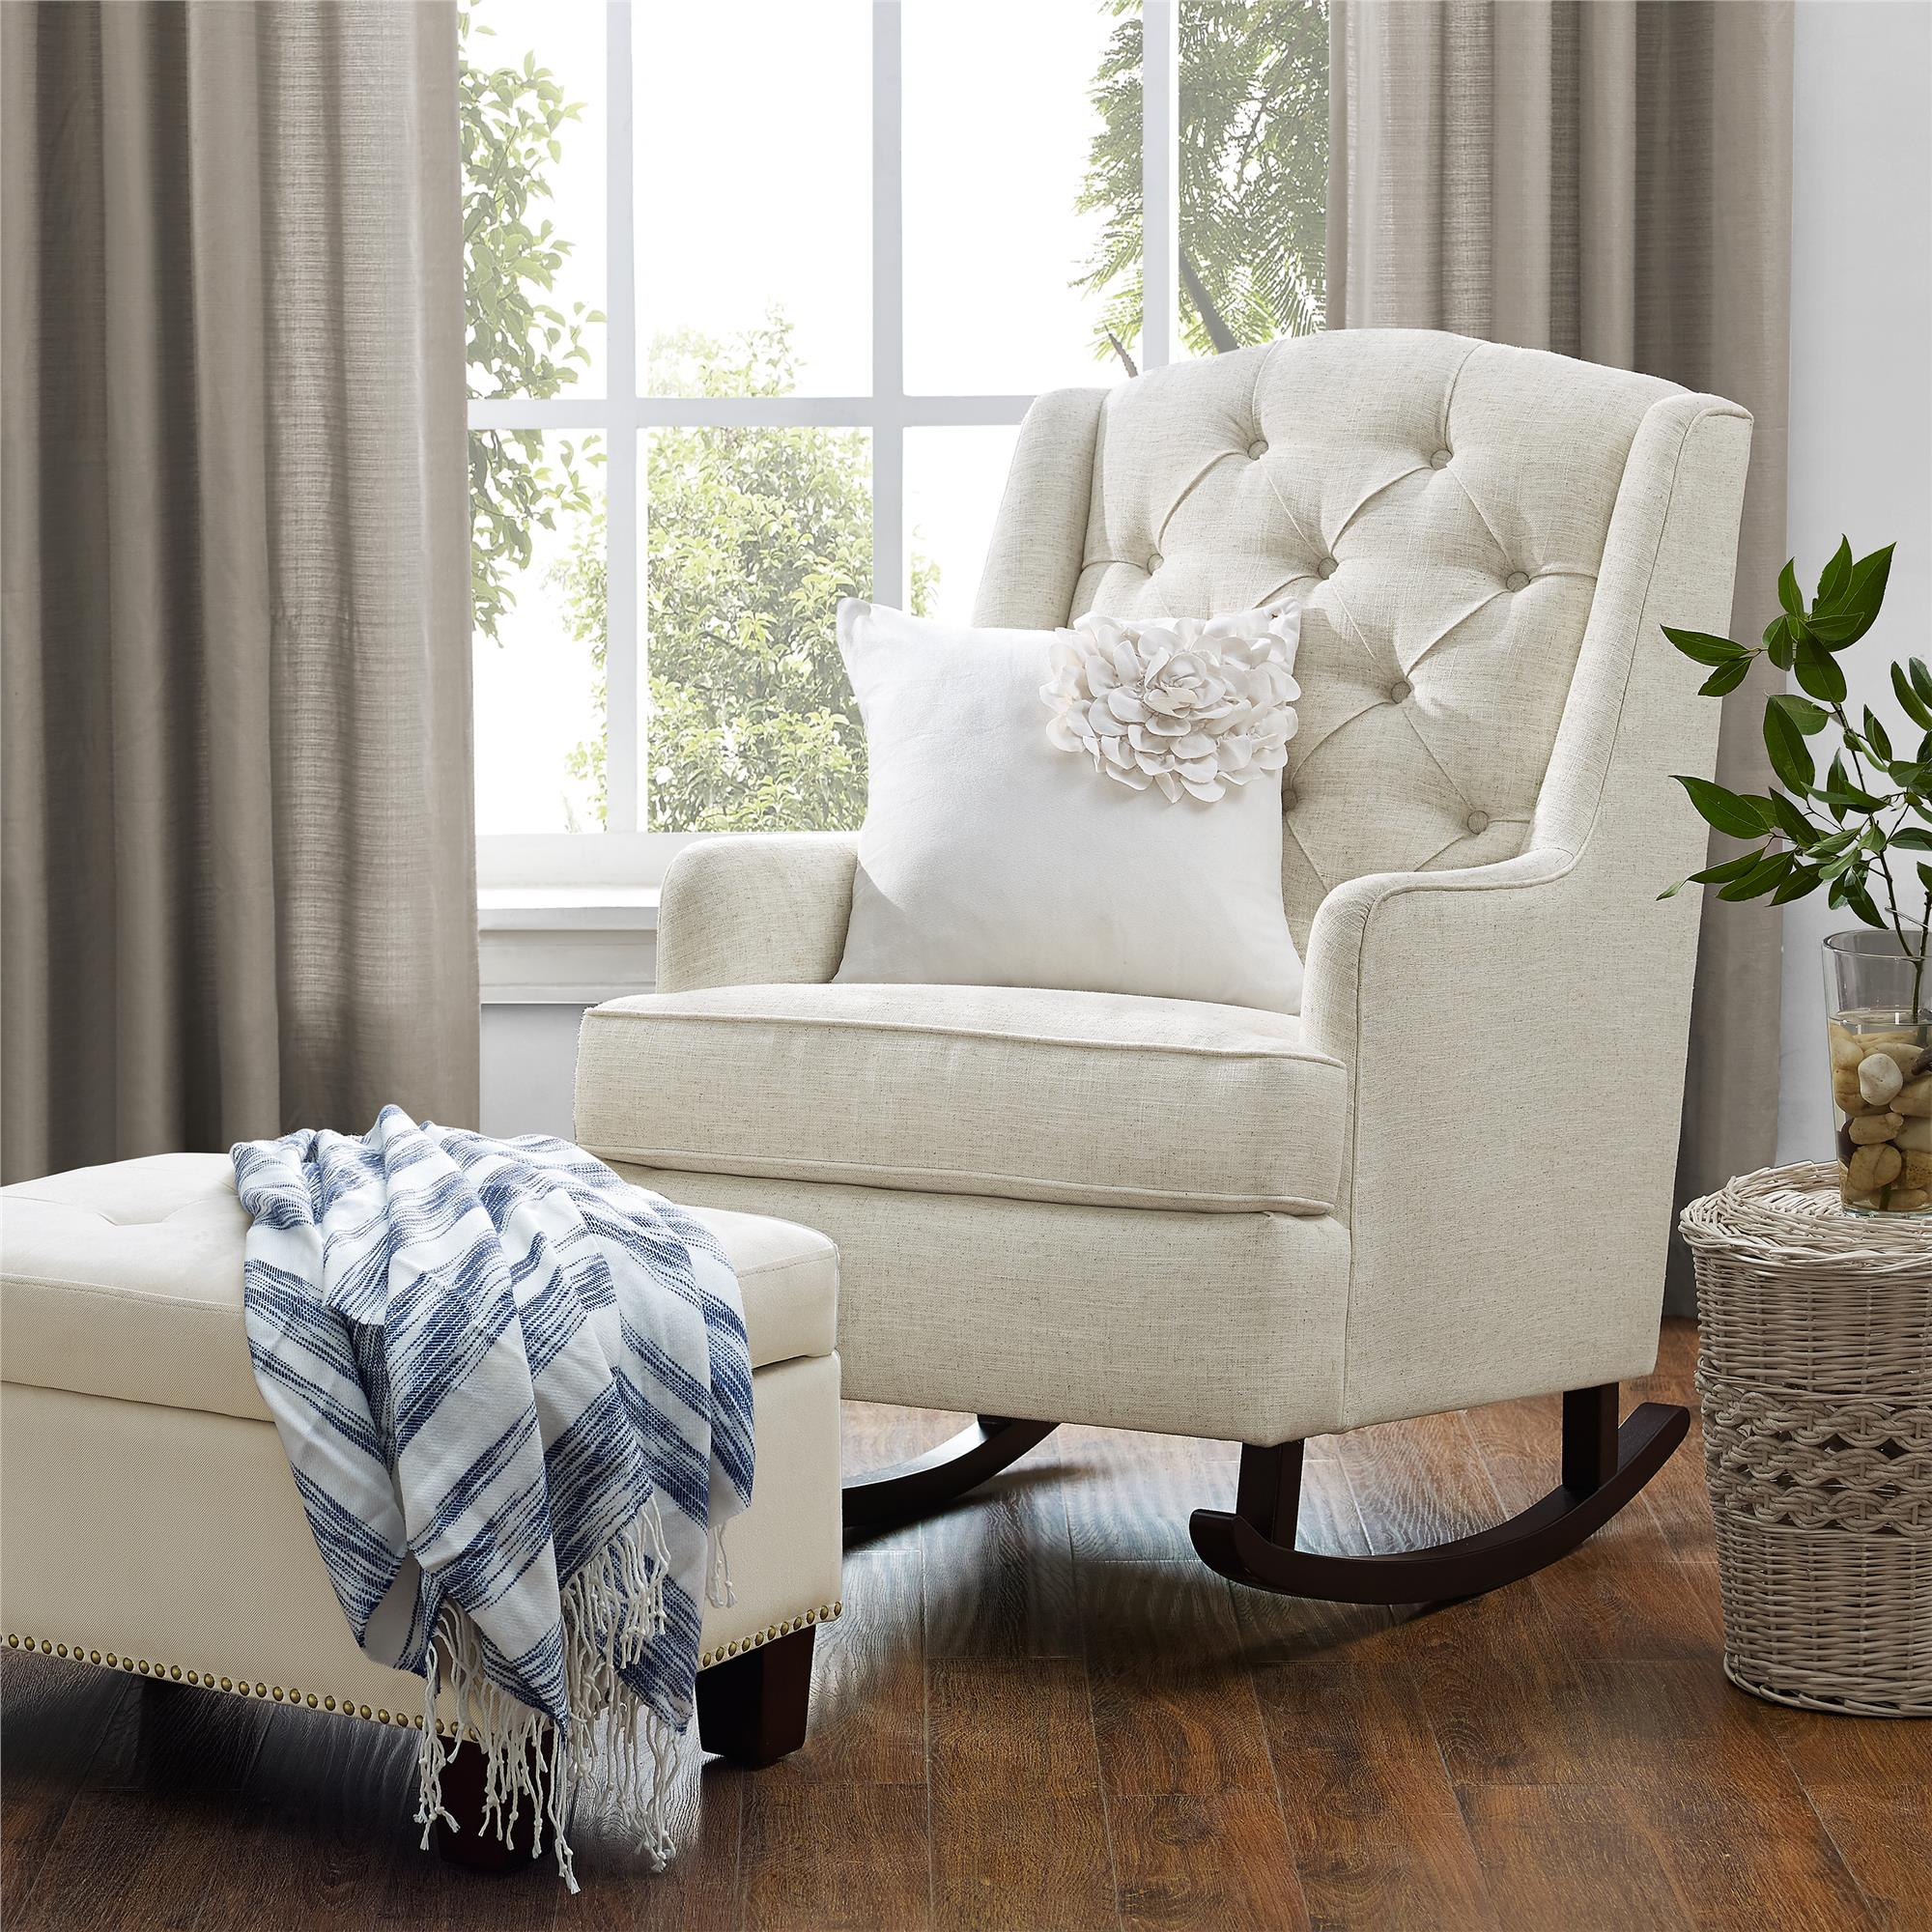 Inspiration about Dorel Living | Baby Relax Zoe Tufted Rocking Chair, Cream Pertaining To Rocking Chairs In Cream Fabric And White (#8 of 20)